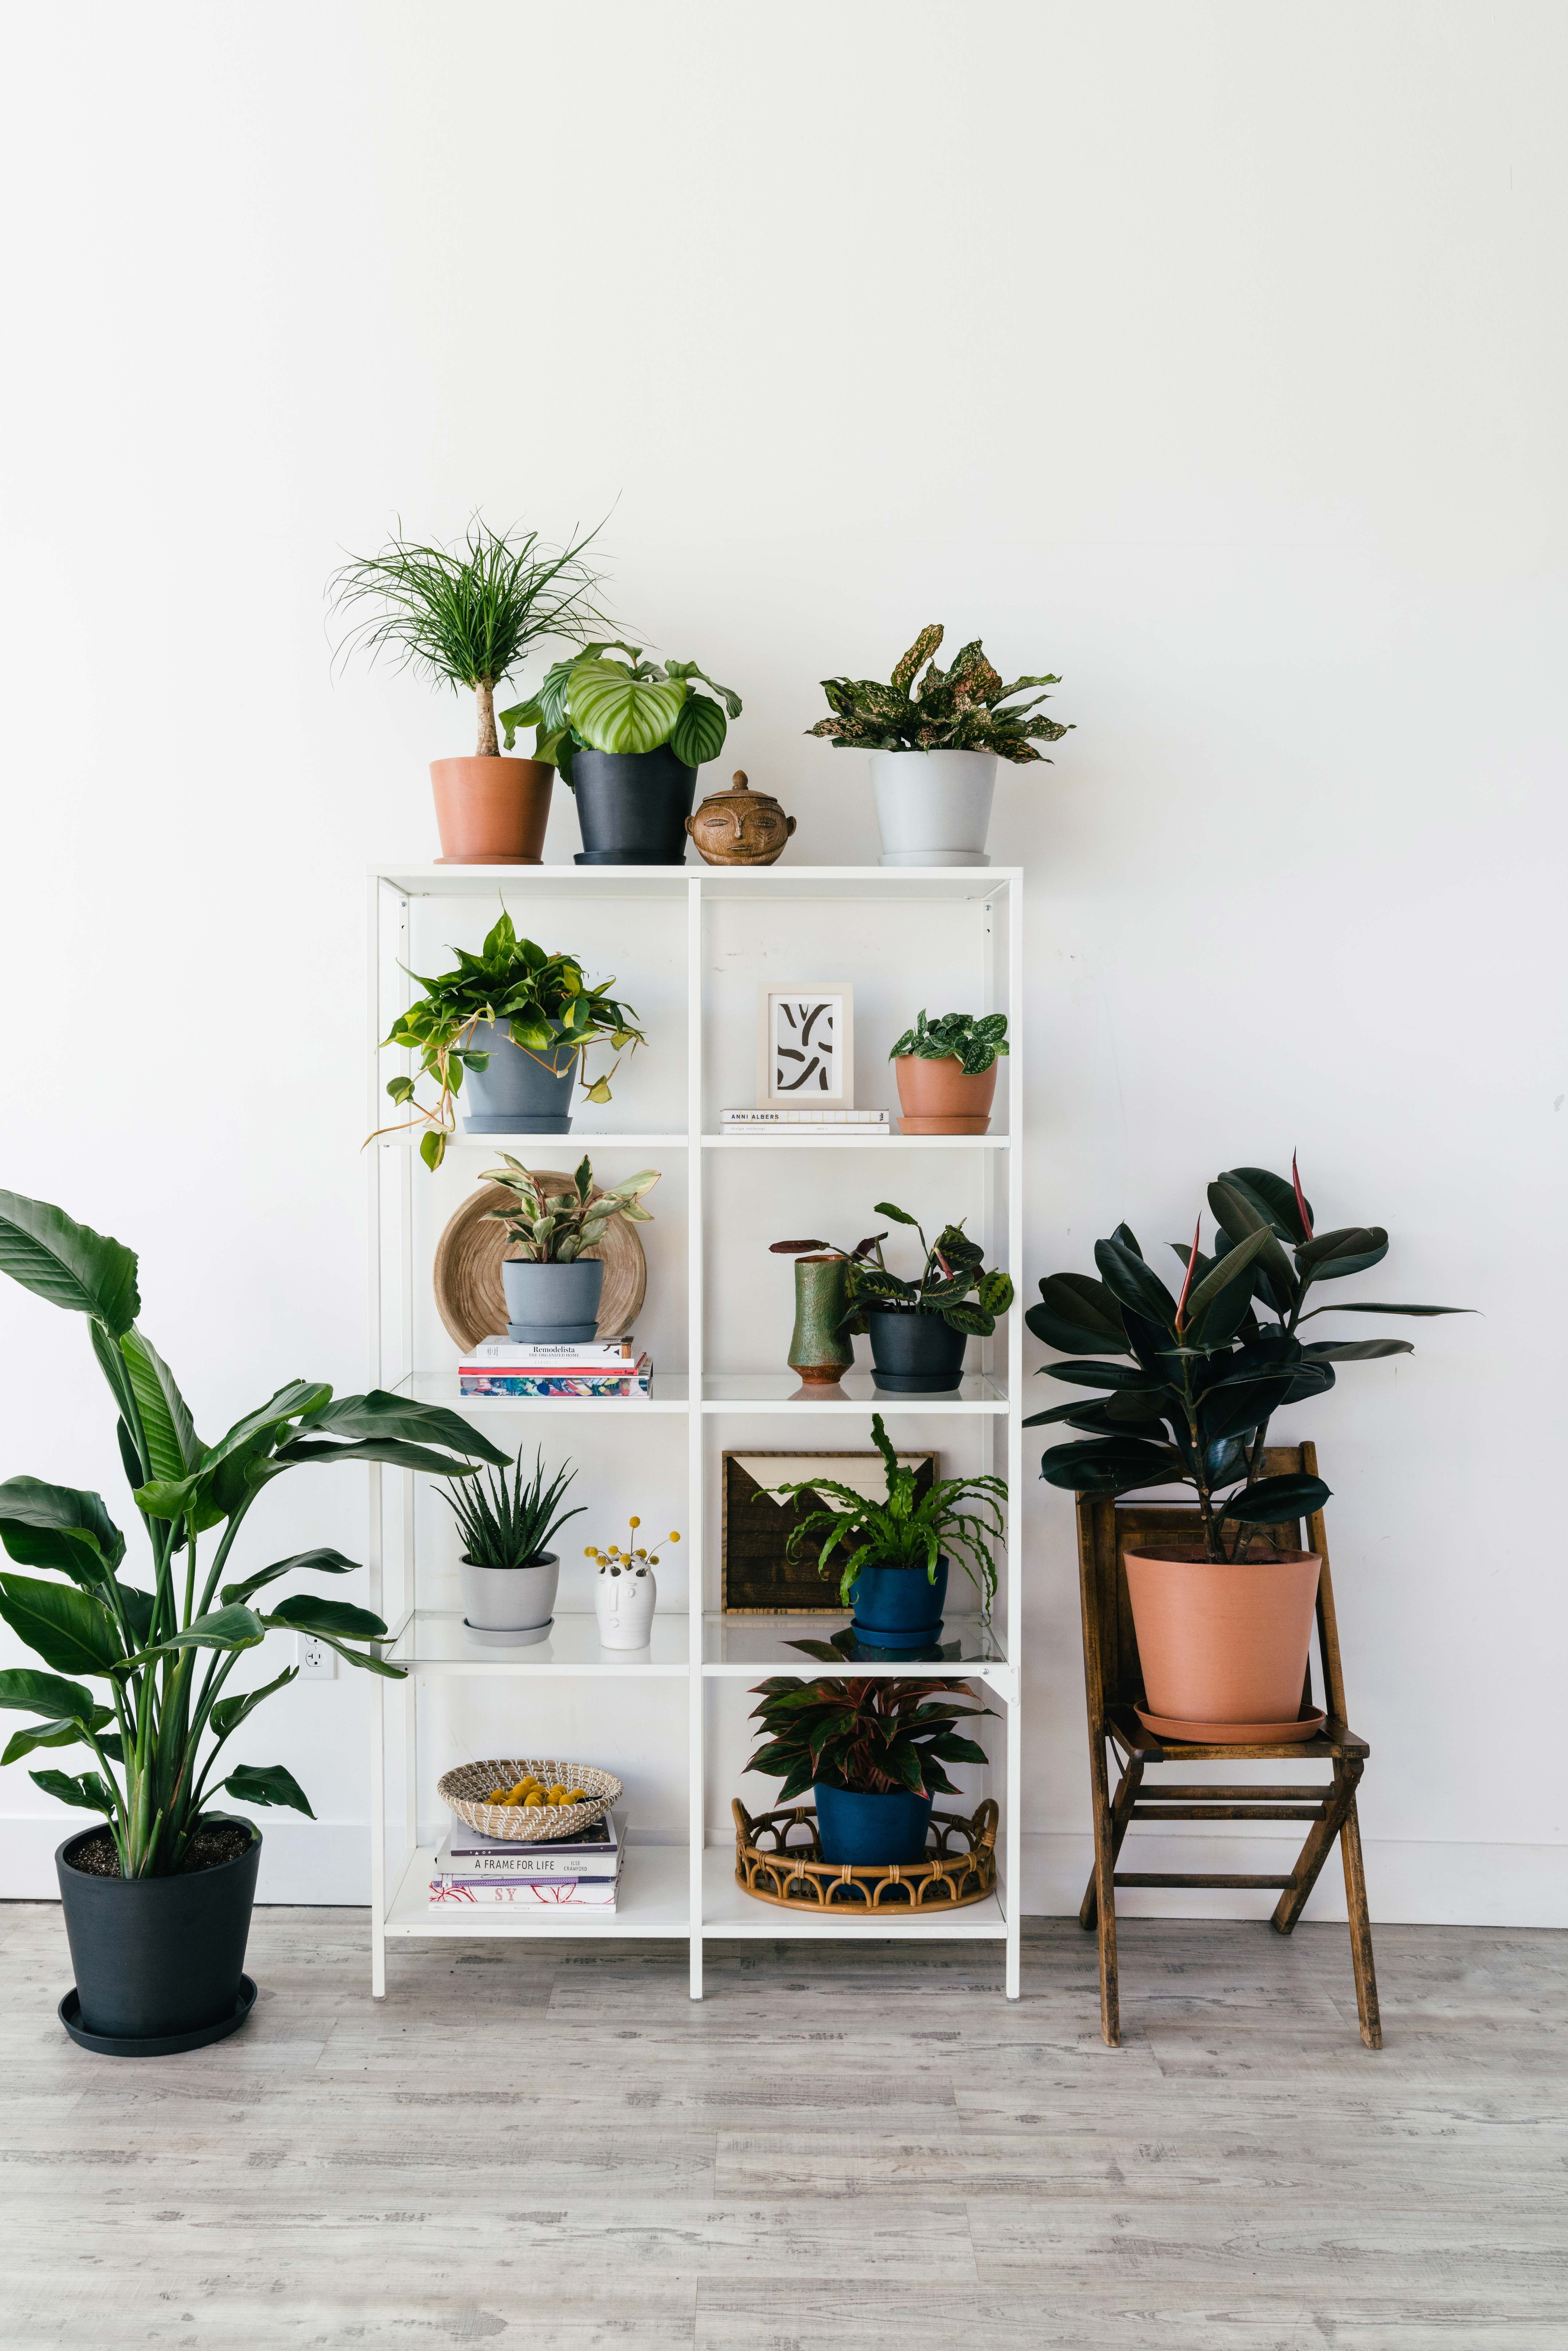 5 Signs Your Houseplant Is Dying, and How to Reverse Them